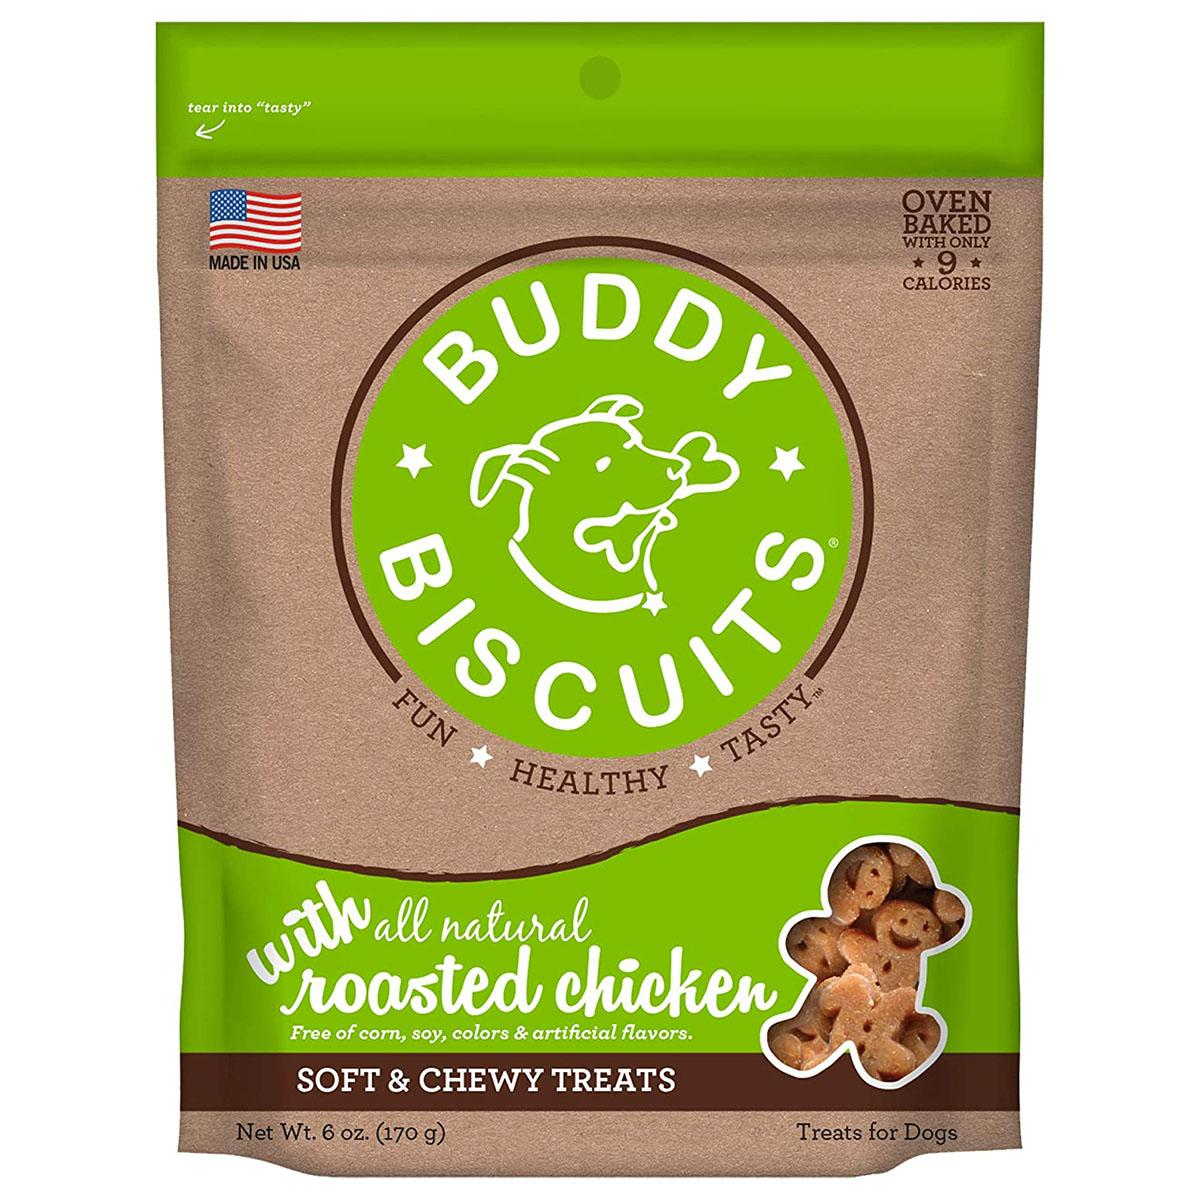 Buddy Biscuits Whole Grain Soft & Chewy Dog Treats - Roasted Chicken